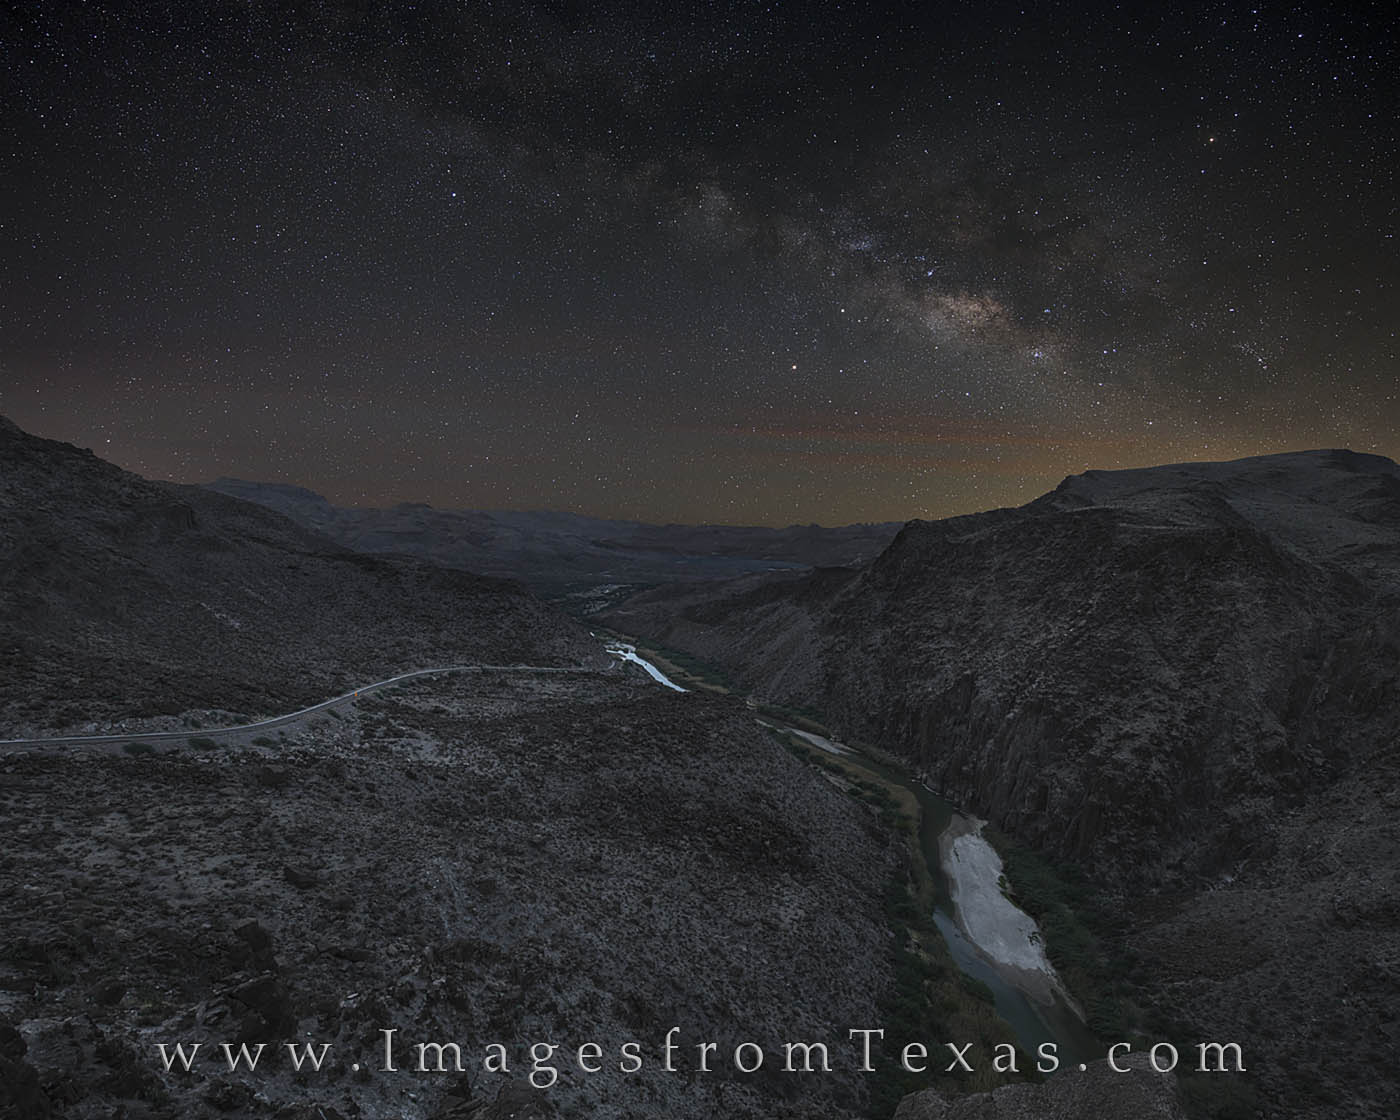 Milky Way, Big Bend Ranch, FM 170, Dom Rock, Big Hill, west Texas, night sky, rio grande, stars, night, texas landscapes, texas vistas, texas icons, best drives, photo